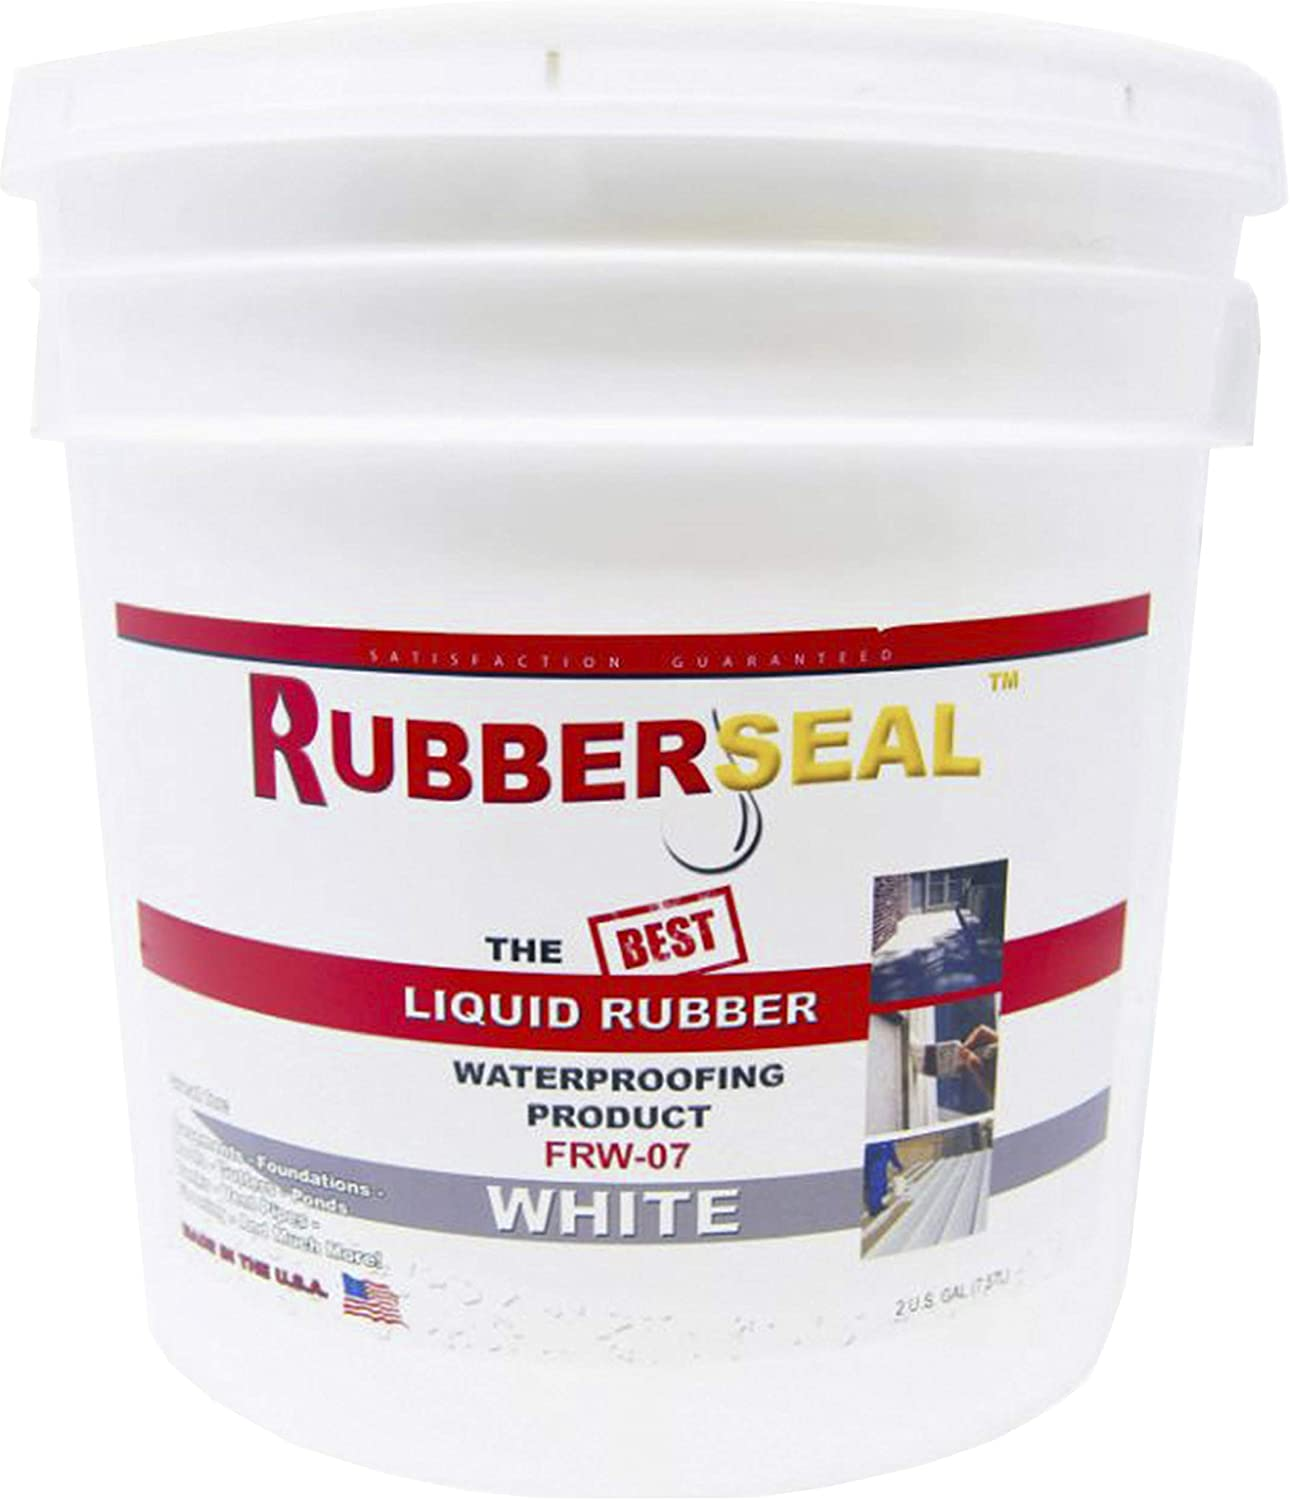 Rubberseal Liquid Rubber Waterproofing and Protective Coating - Roll On WHITE 2 GALLON